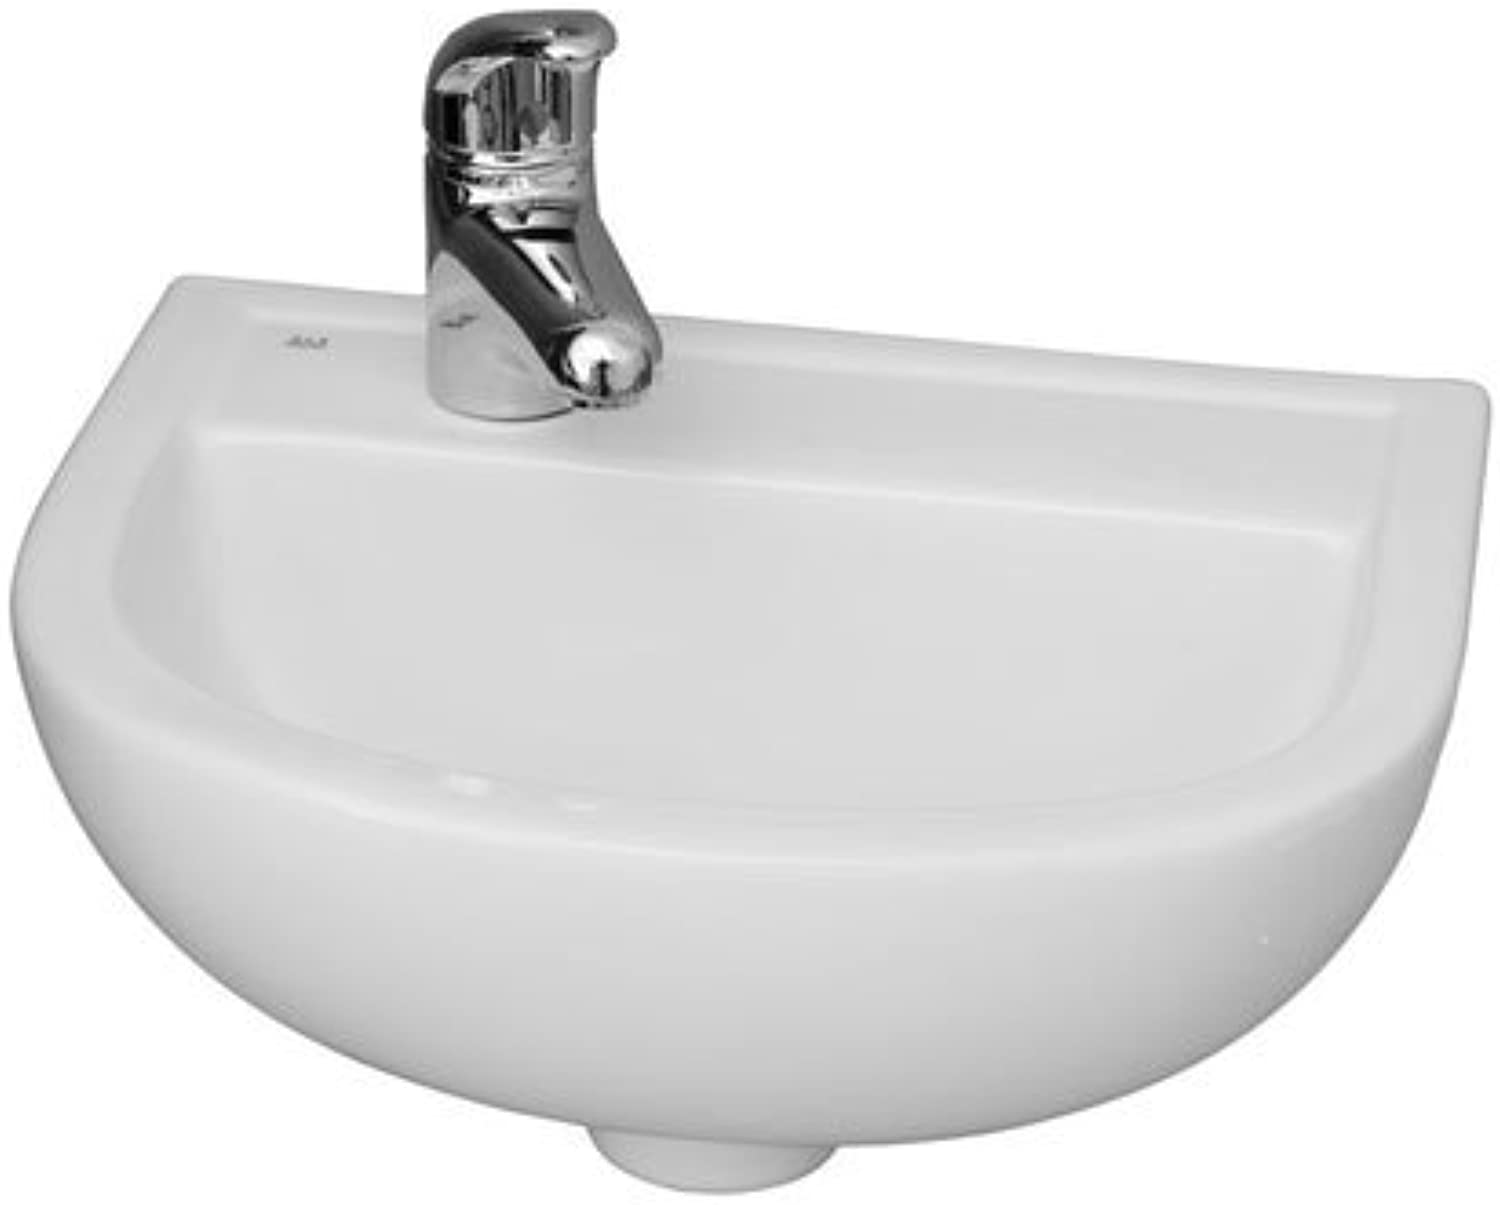 Barclay 4L-531WH Compact 15-Inch Wall Hung Basin with 1 Hole Left